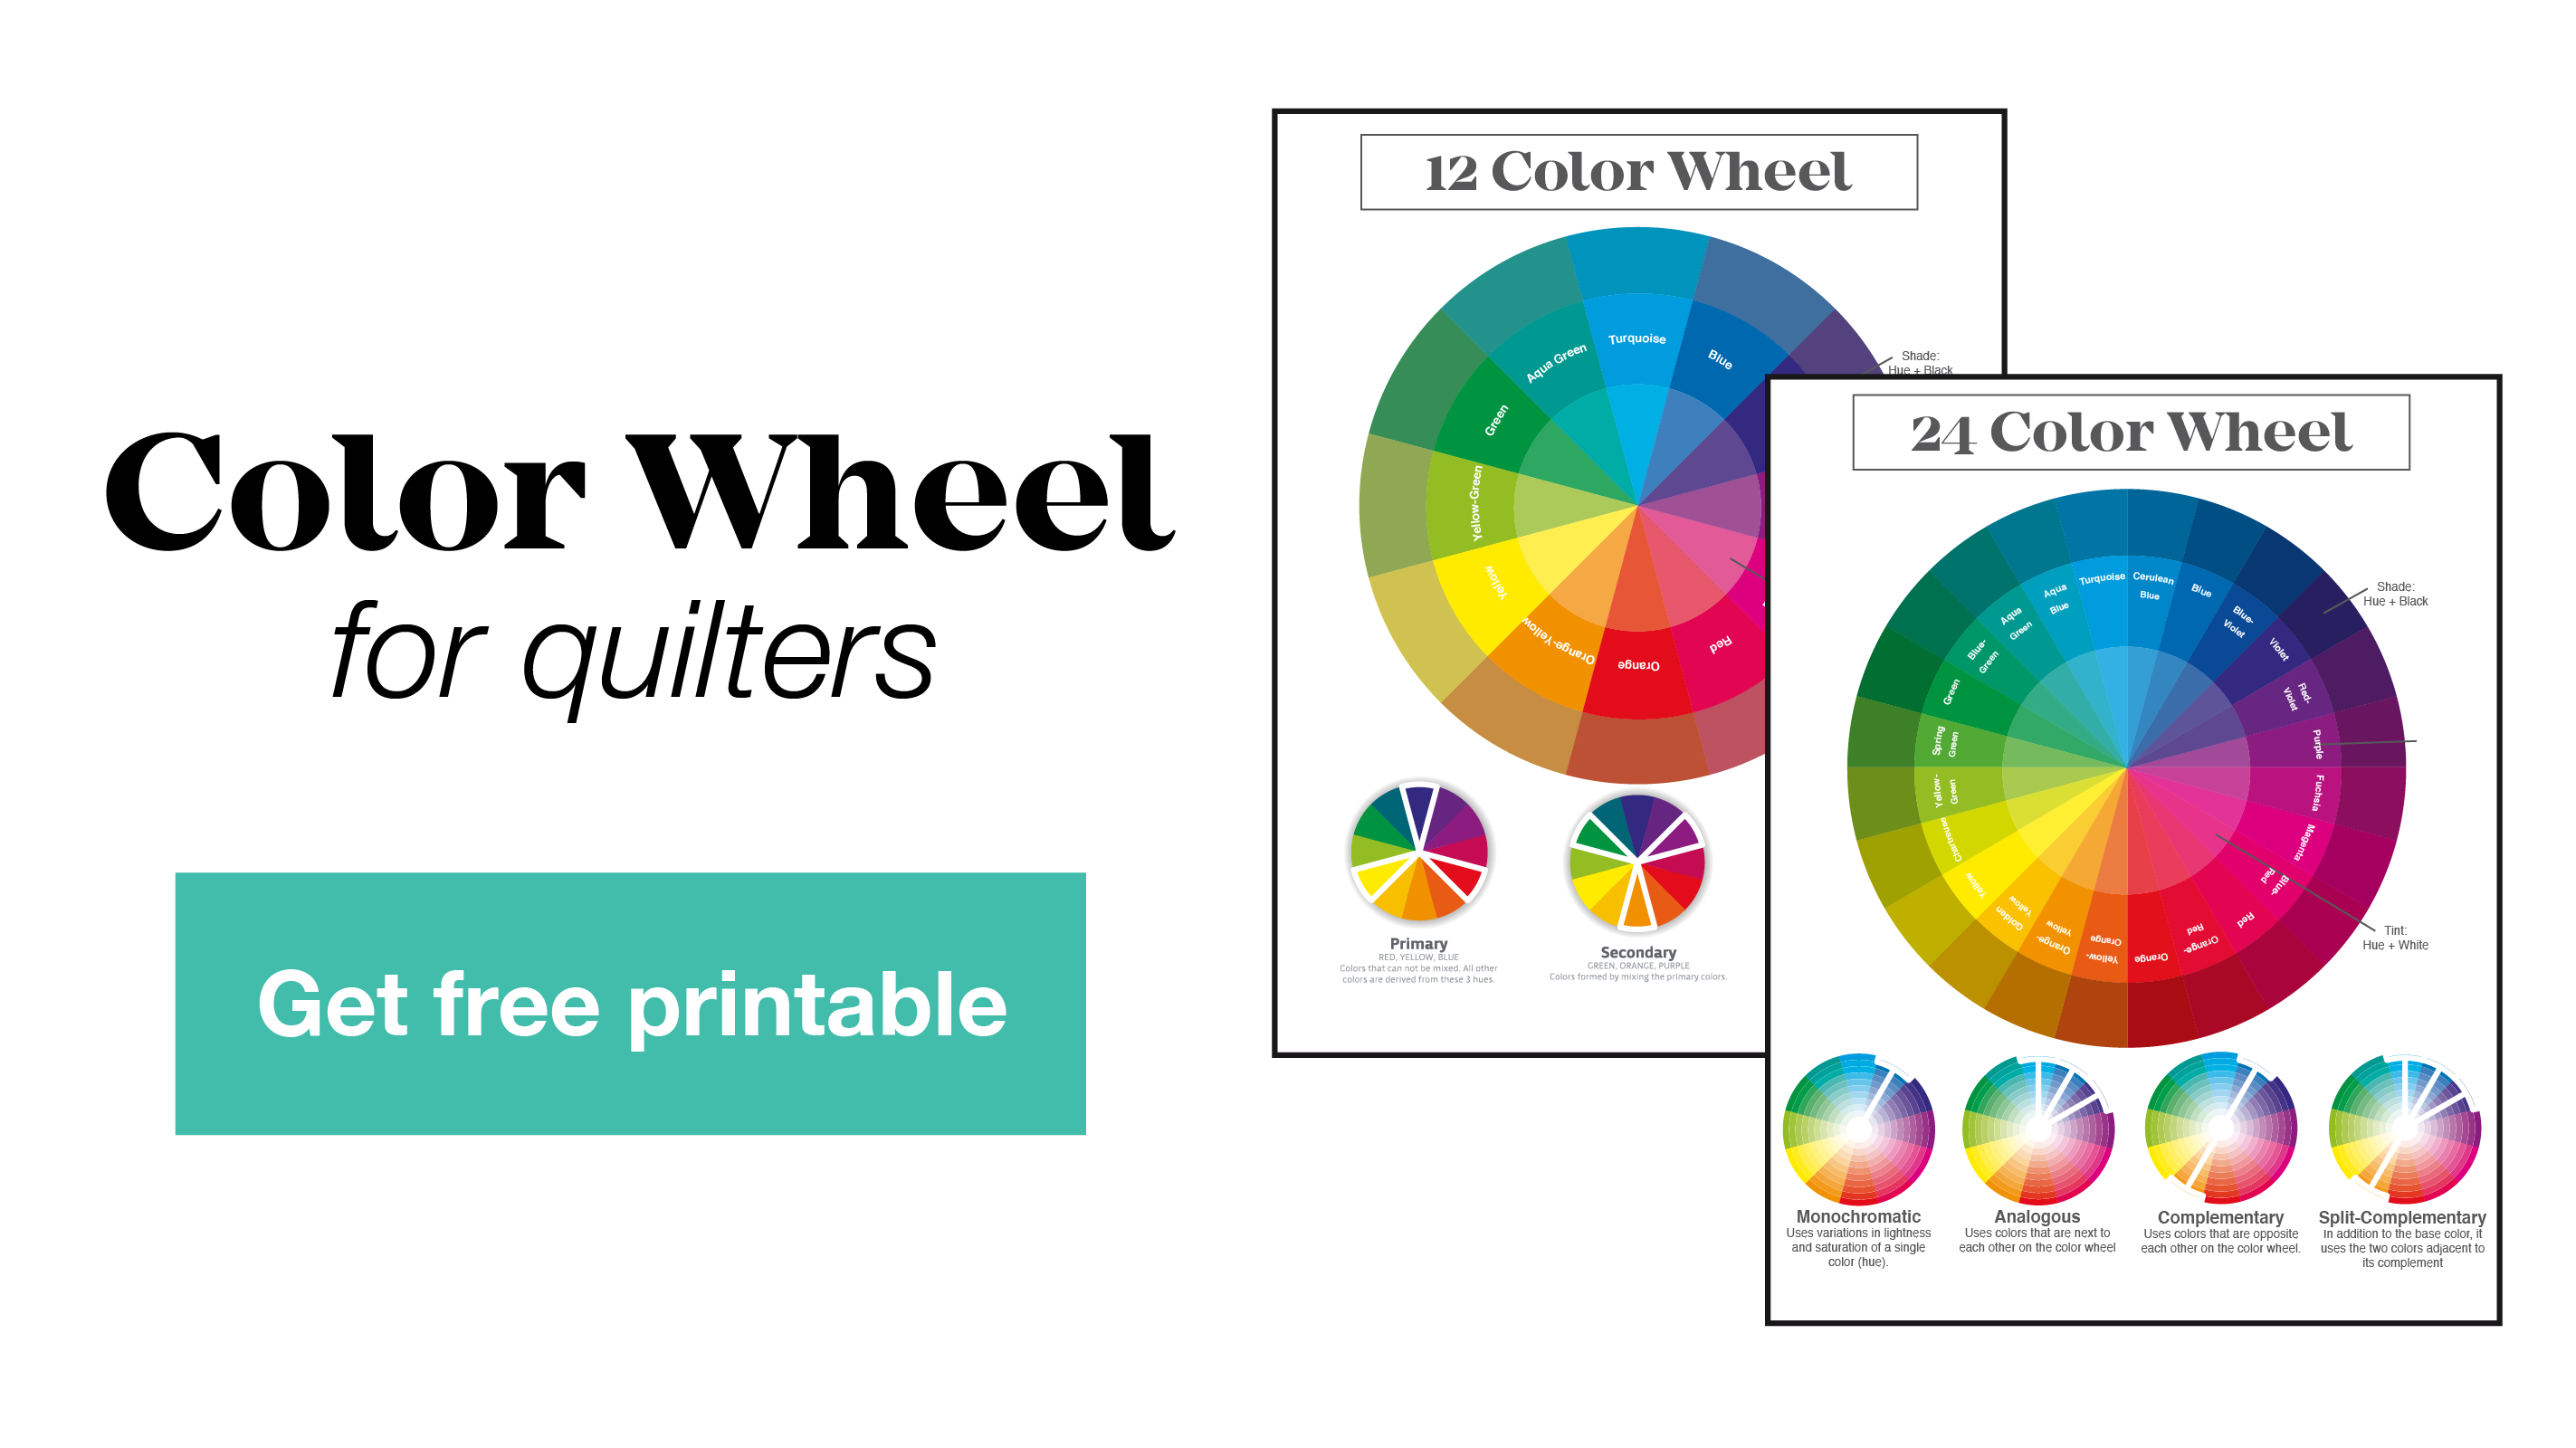 Click here to get your free printable color wheel